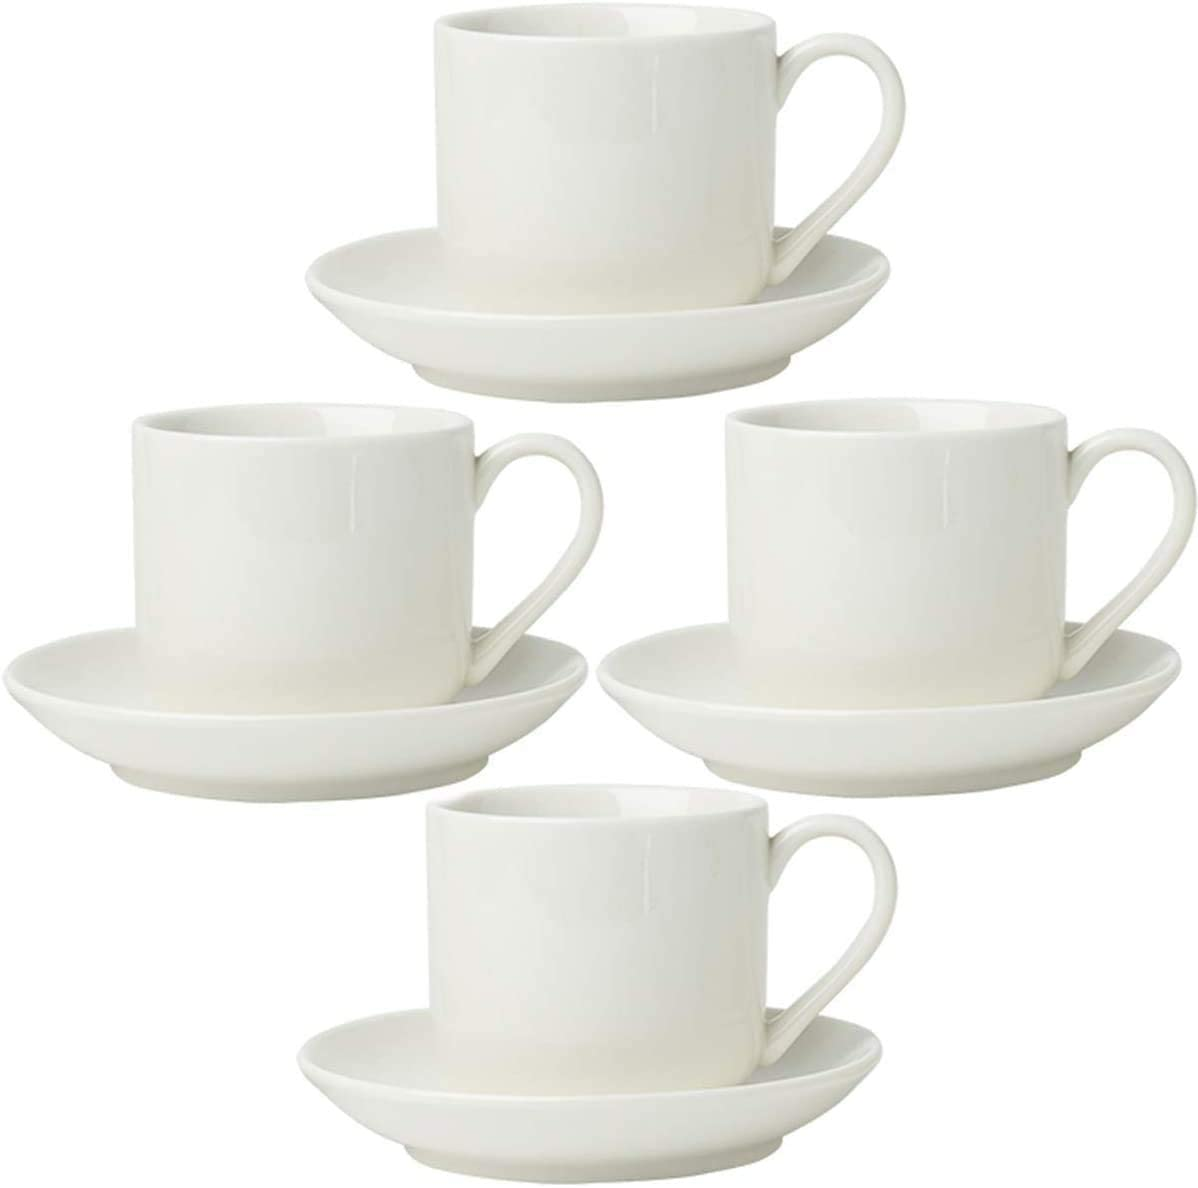 High Class Coffee Cup And Saucer Buy Large Coffee Cups